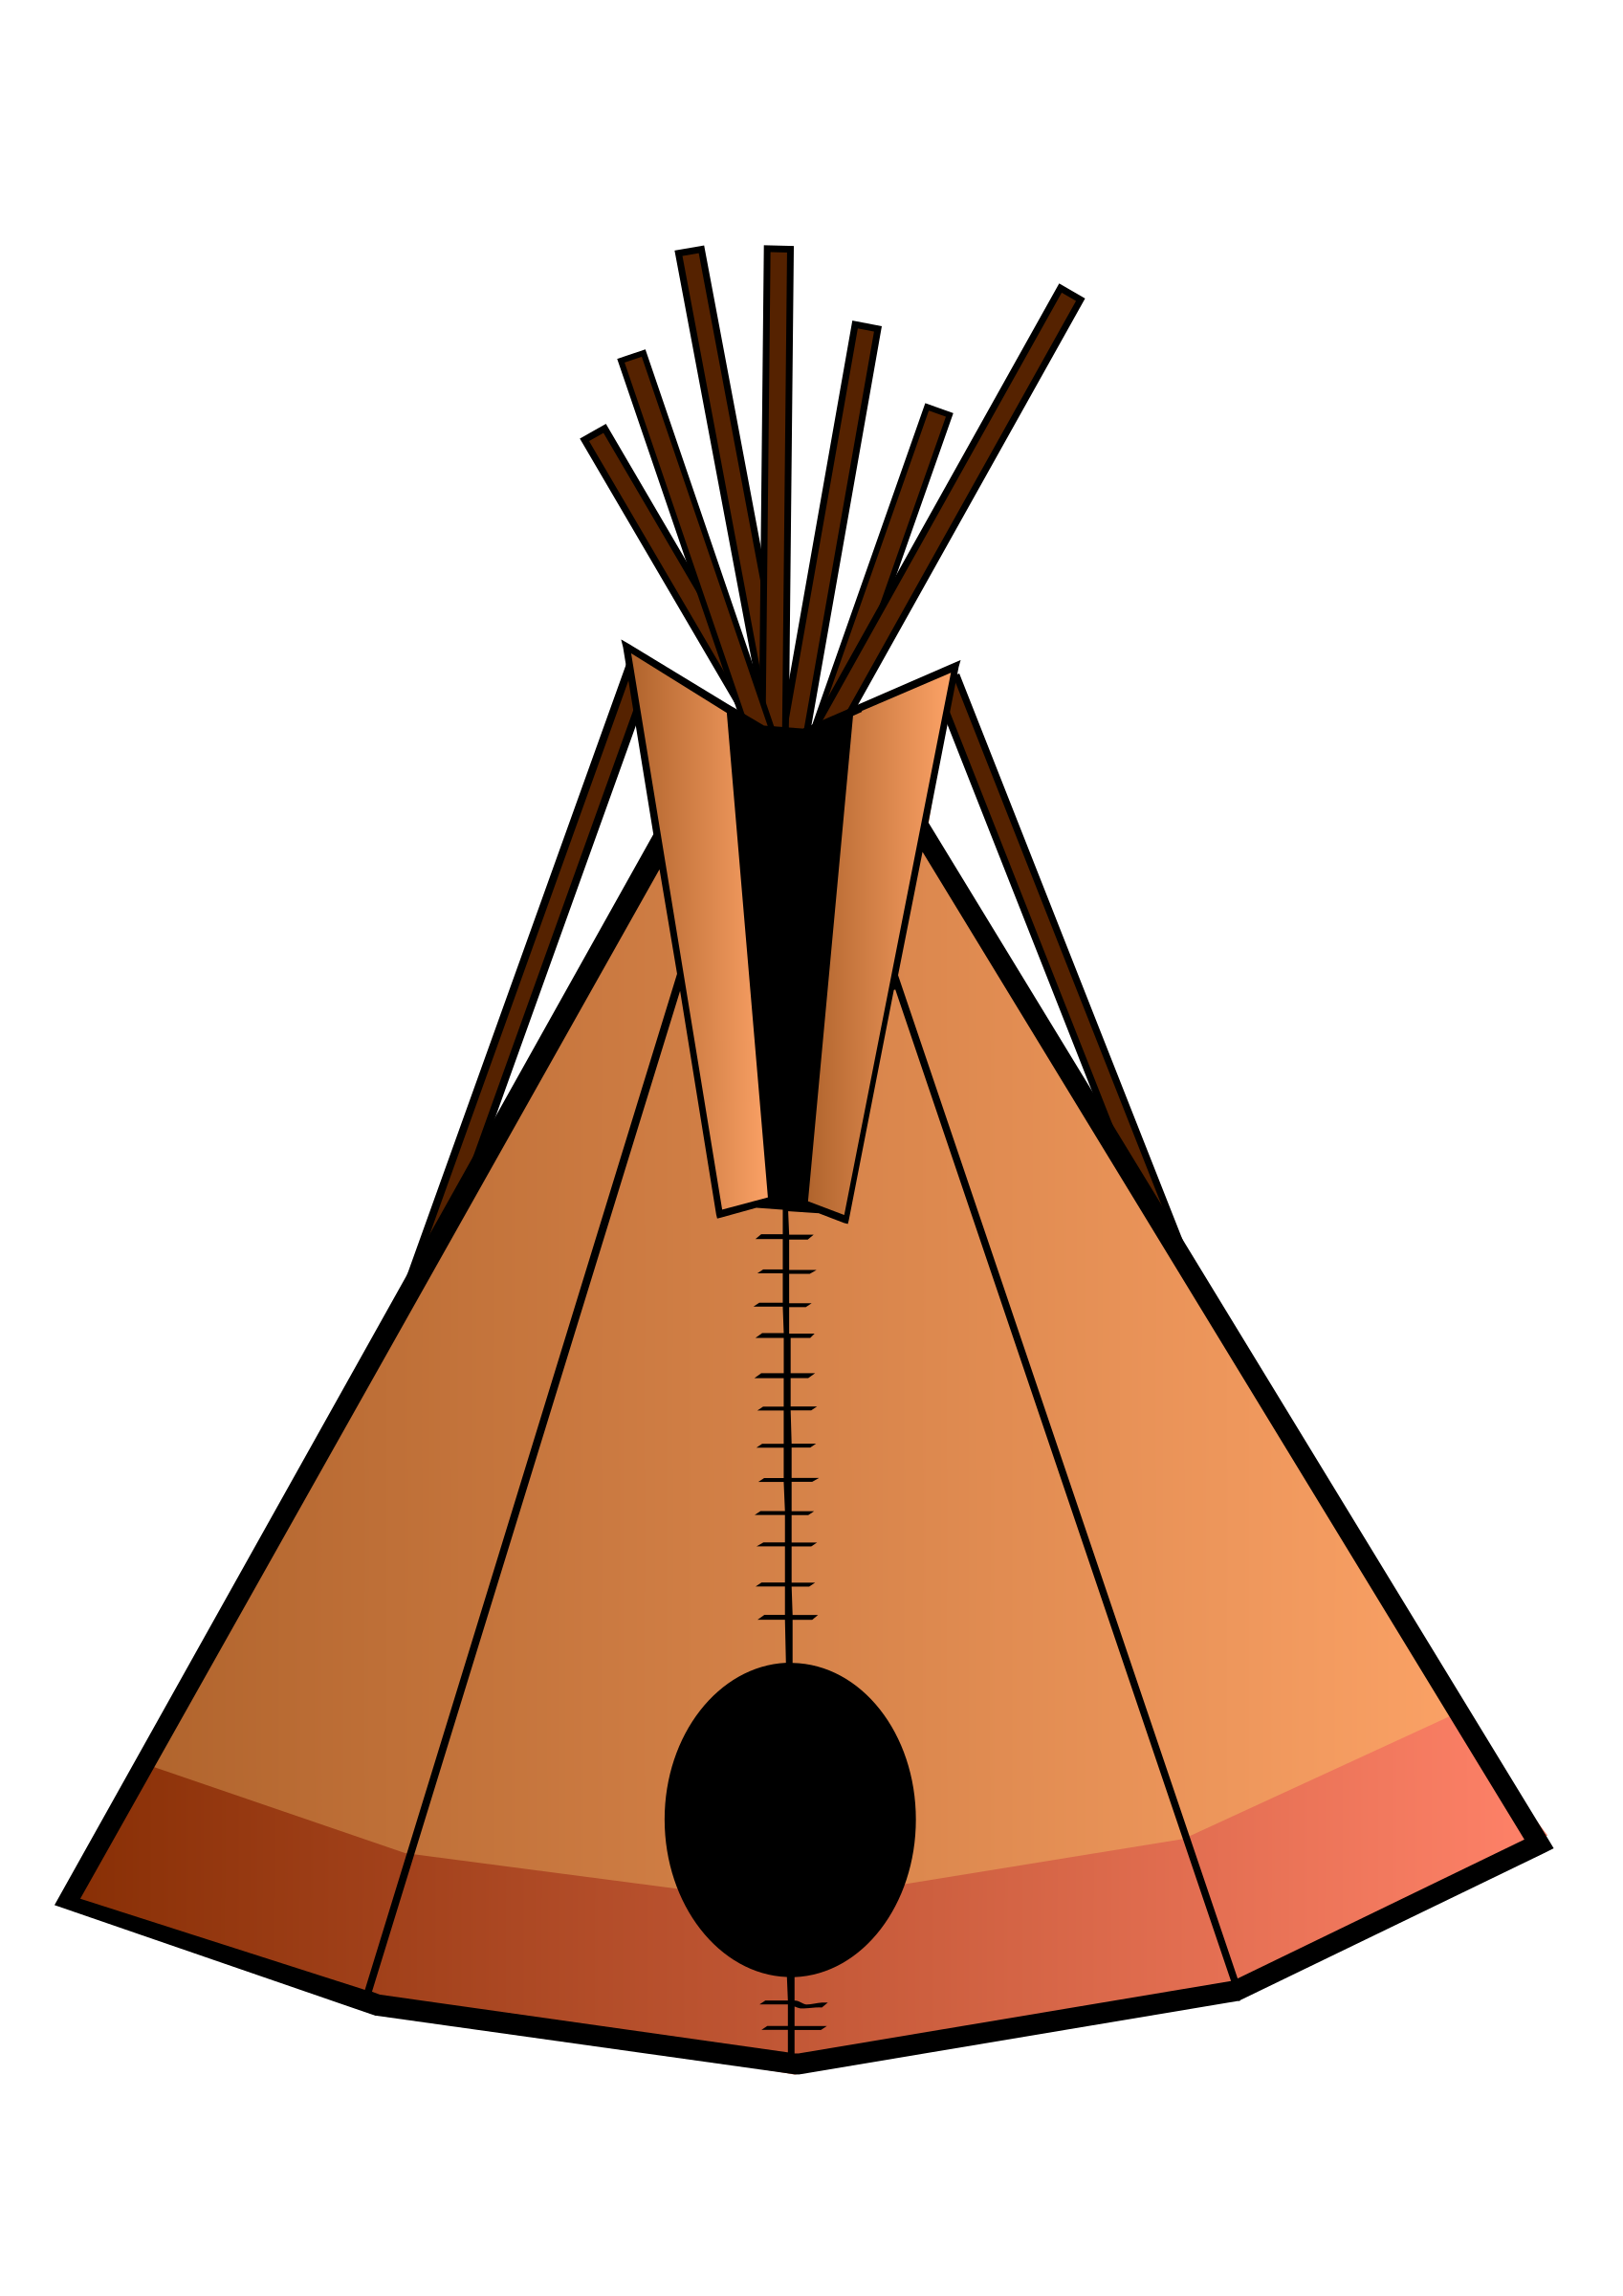 teepee by Jules